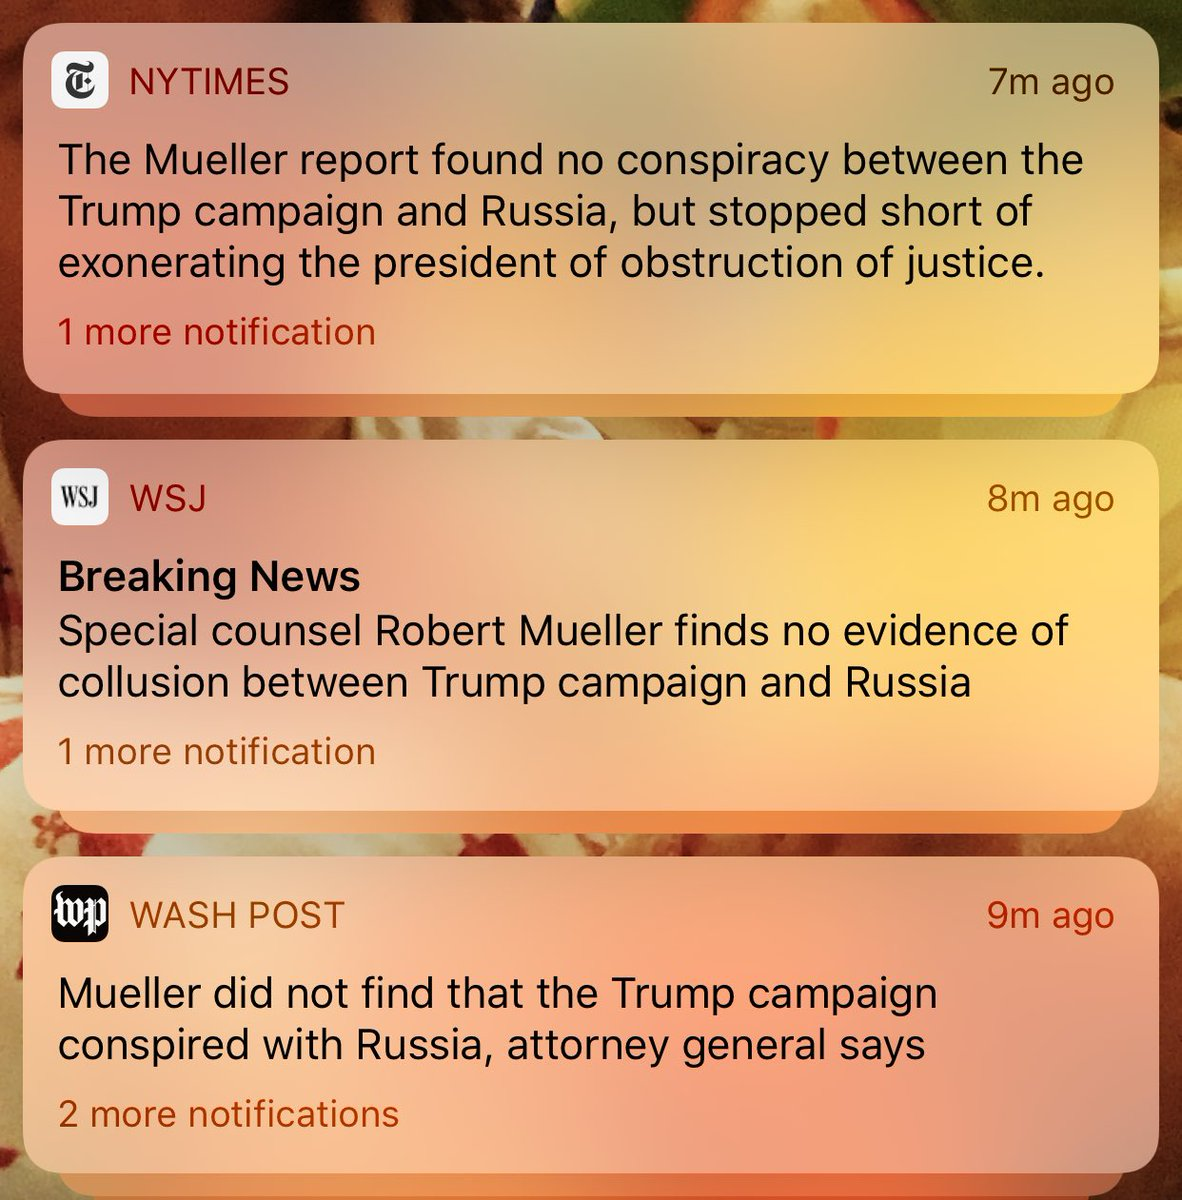 The push notification wars, Mueller edition